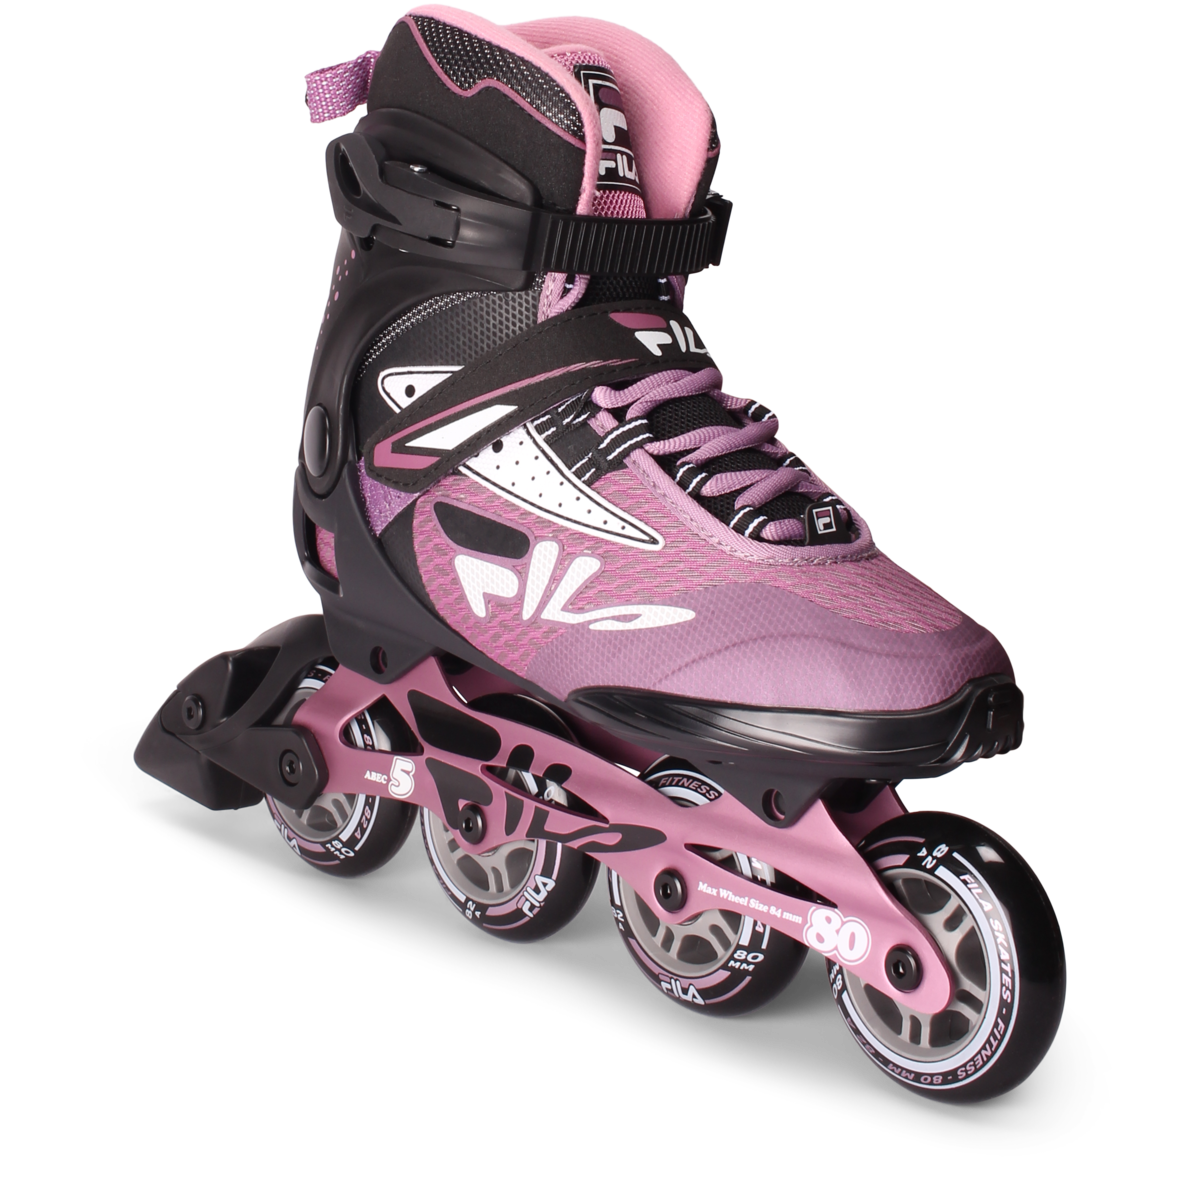 MV Sports Bored Neon XT Skateboard - Pink